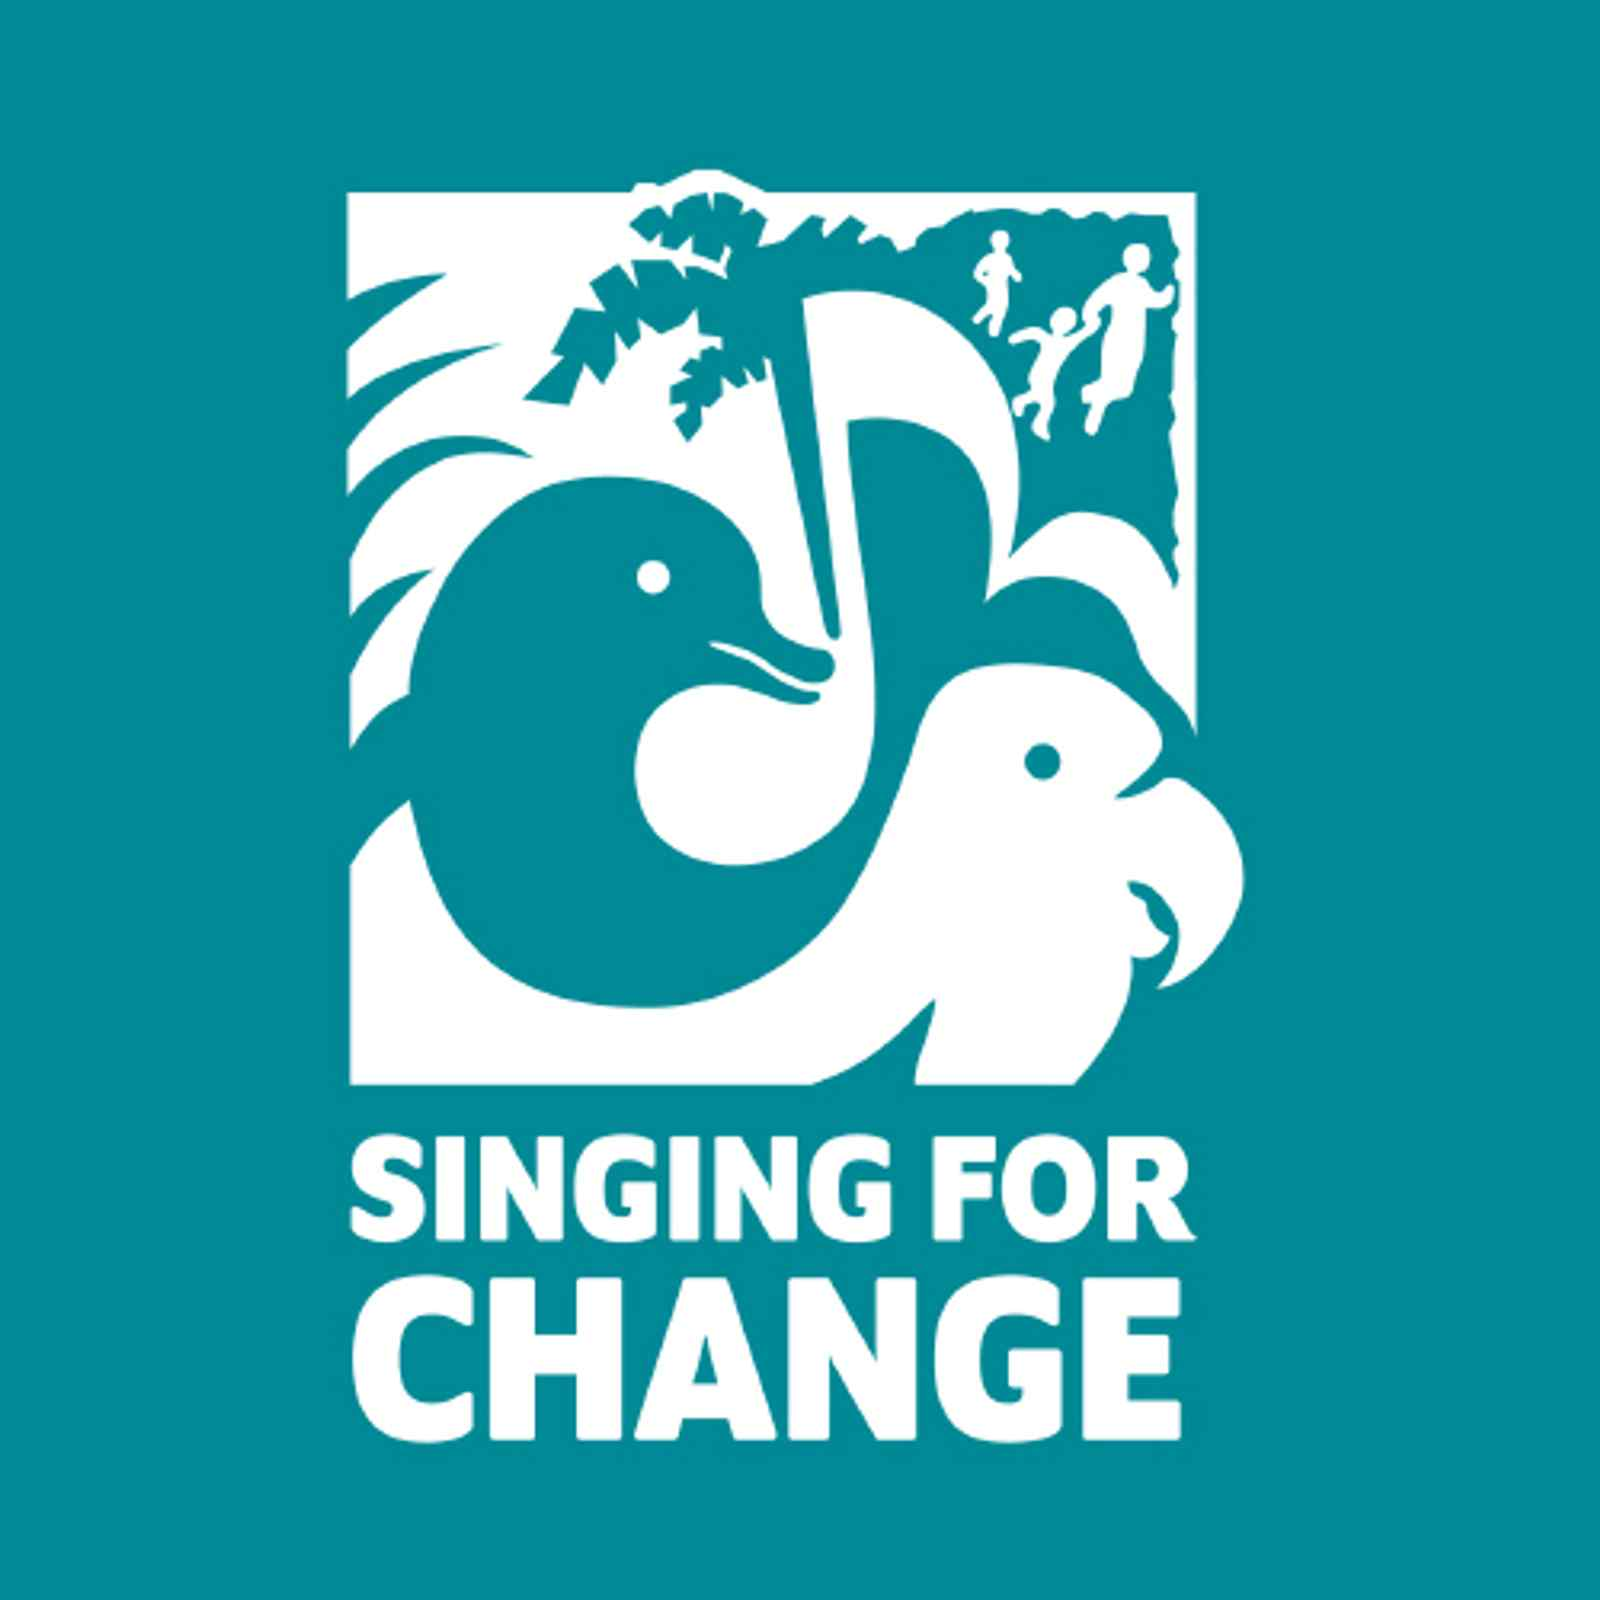 SINGING FOR CHANGE